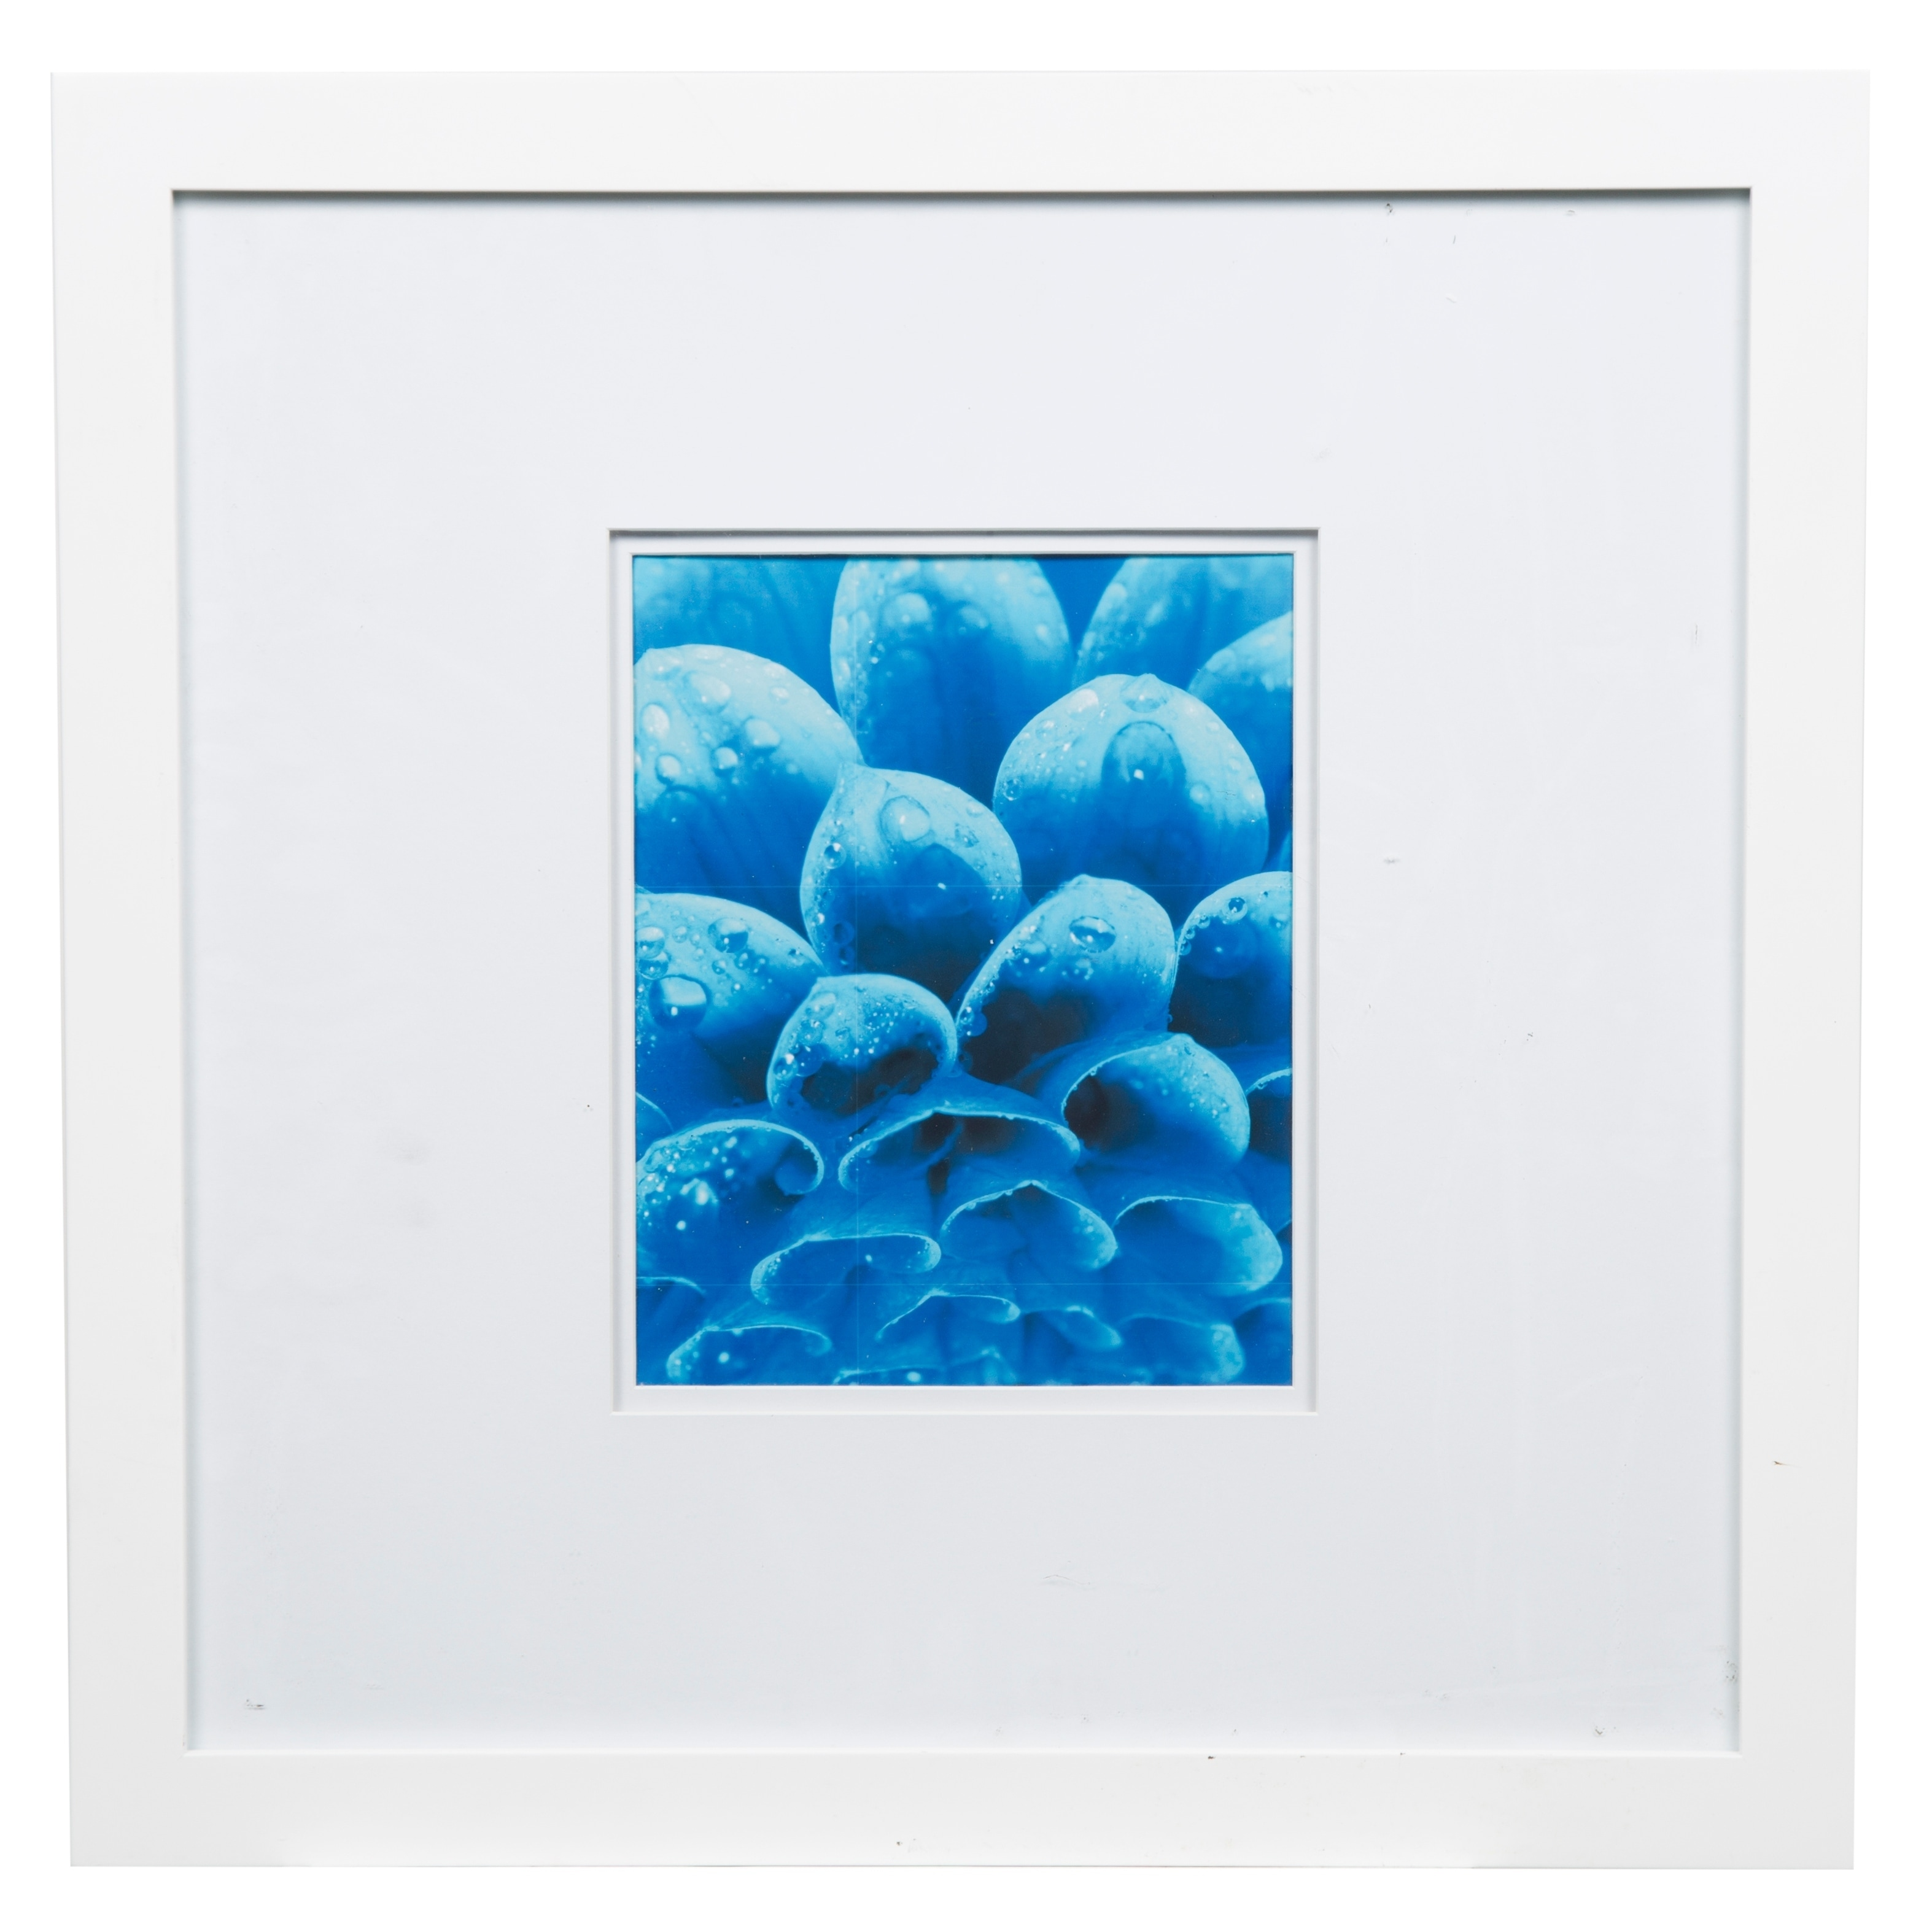 Gallery 18x18 wide white double mat to 8x10 picture frame free gallery 18x18 wide white double mat to 8x10 picture frame free shipping on orders over 45 overstock 24279750 jeuxipadfo Gallery